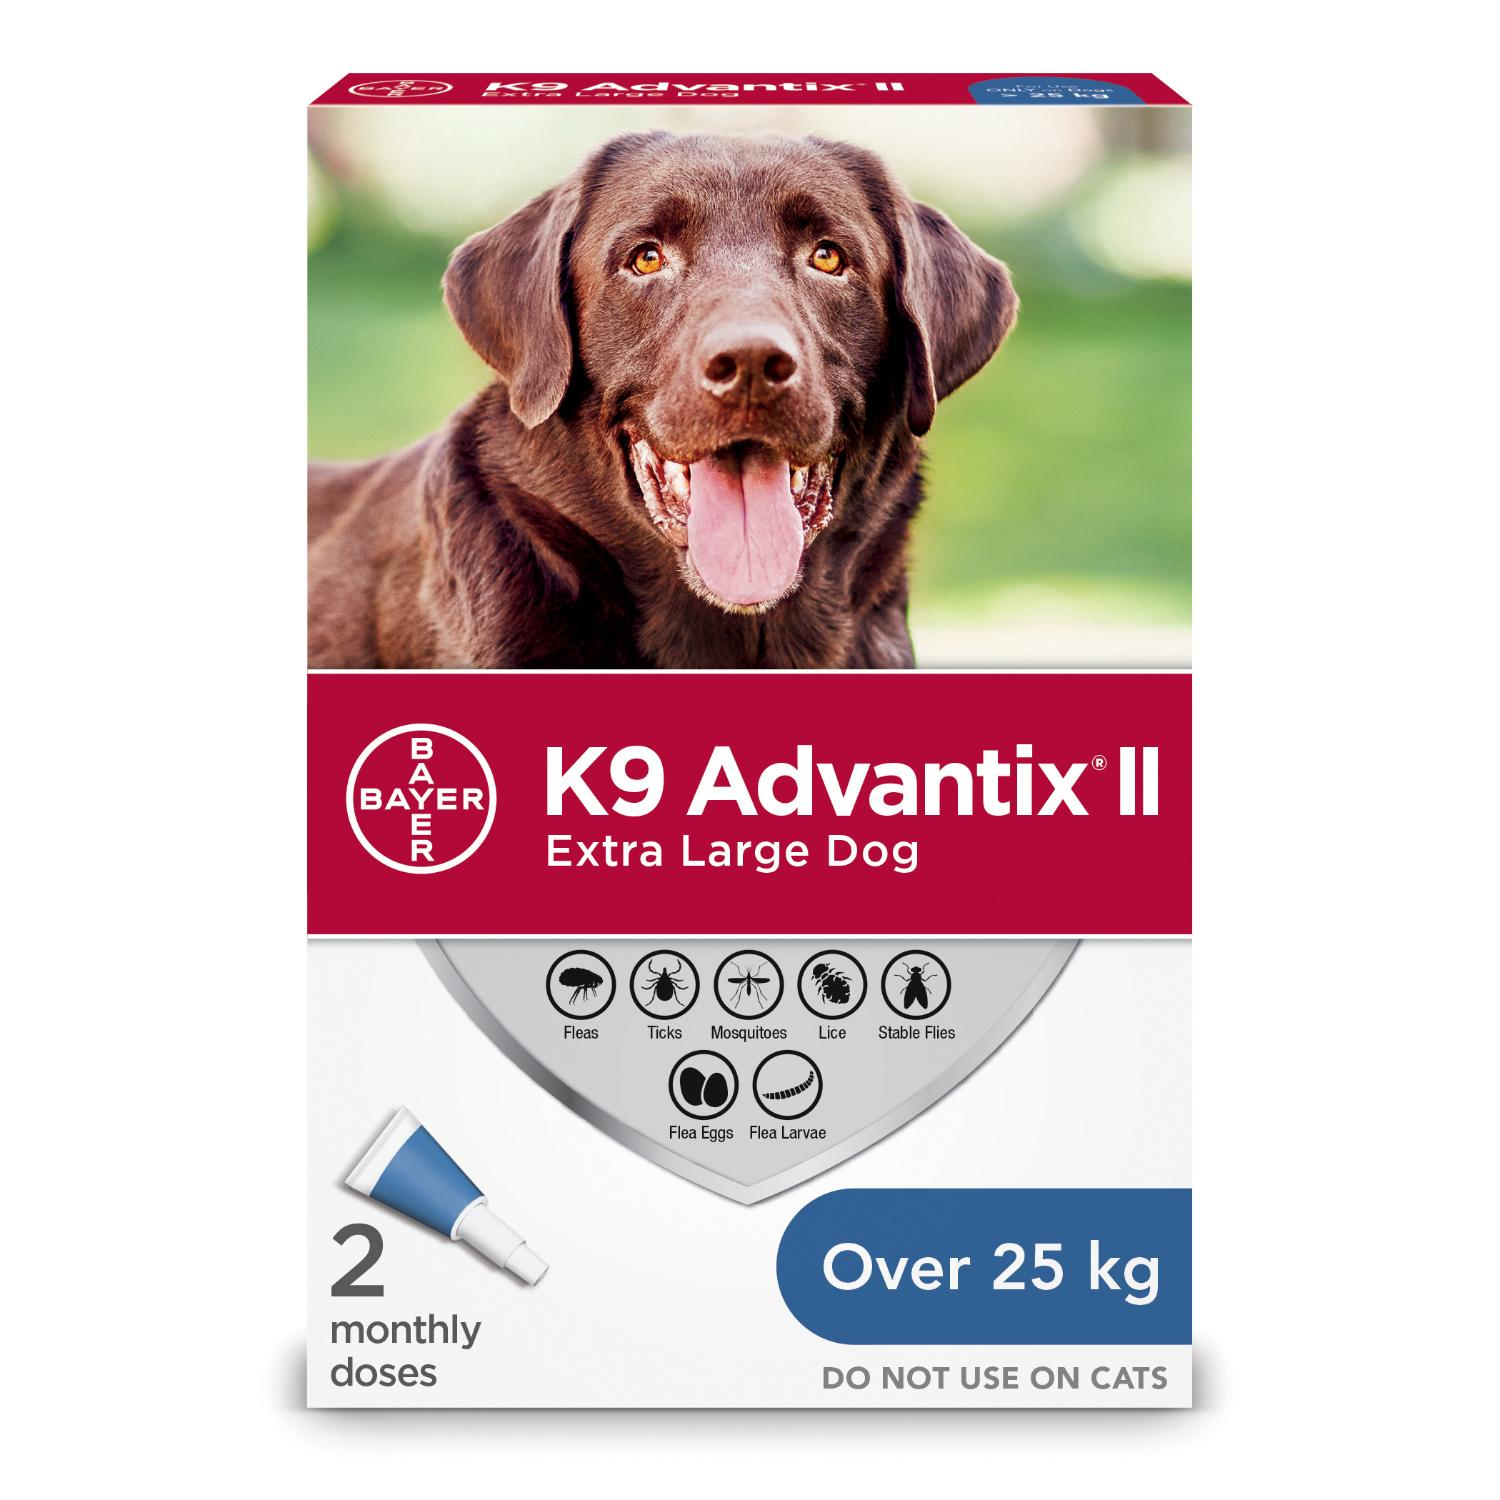 Bayer K9 Advantix II Flea Protection for Extra Large Dogs over 25-kg, 2-pk